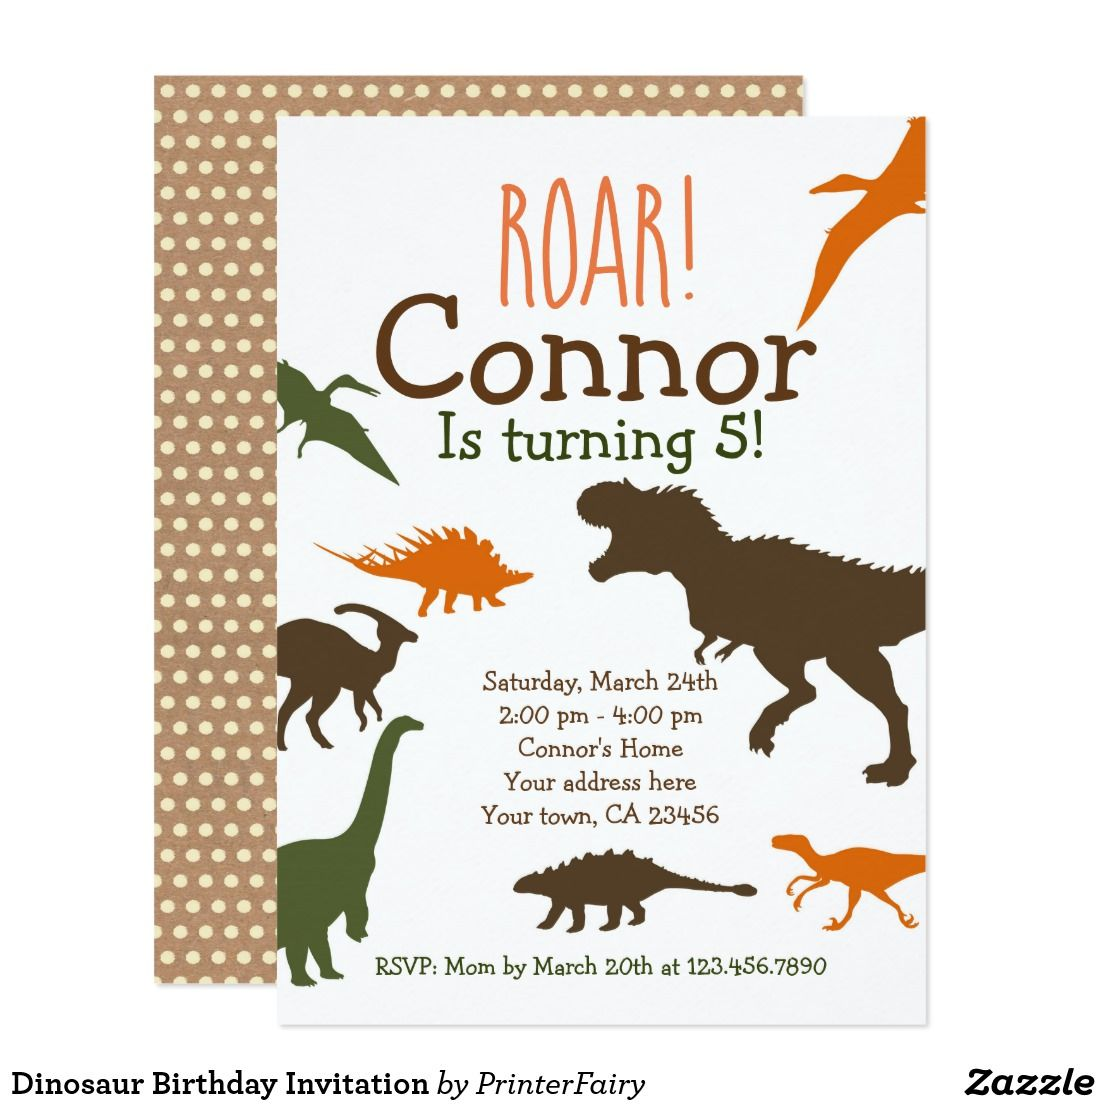 Dinosaur Birthday Invitation Celebrate A Perfect With These Invitations You Can Personalize All The Text To Fit Your Needs